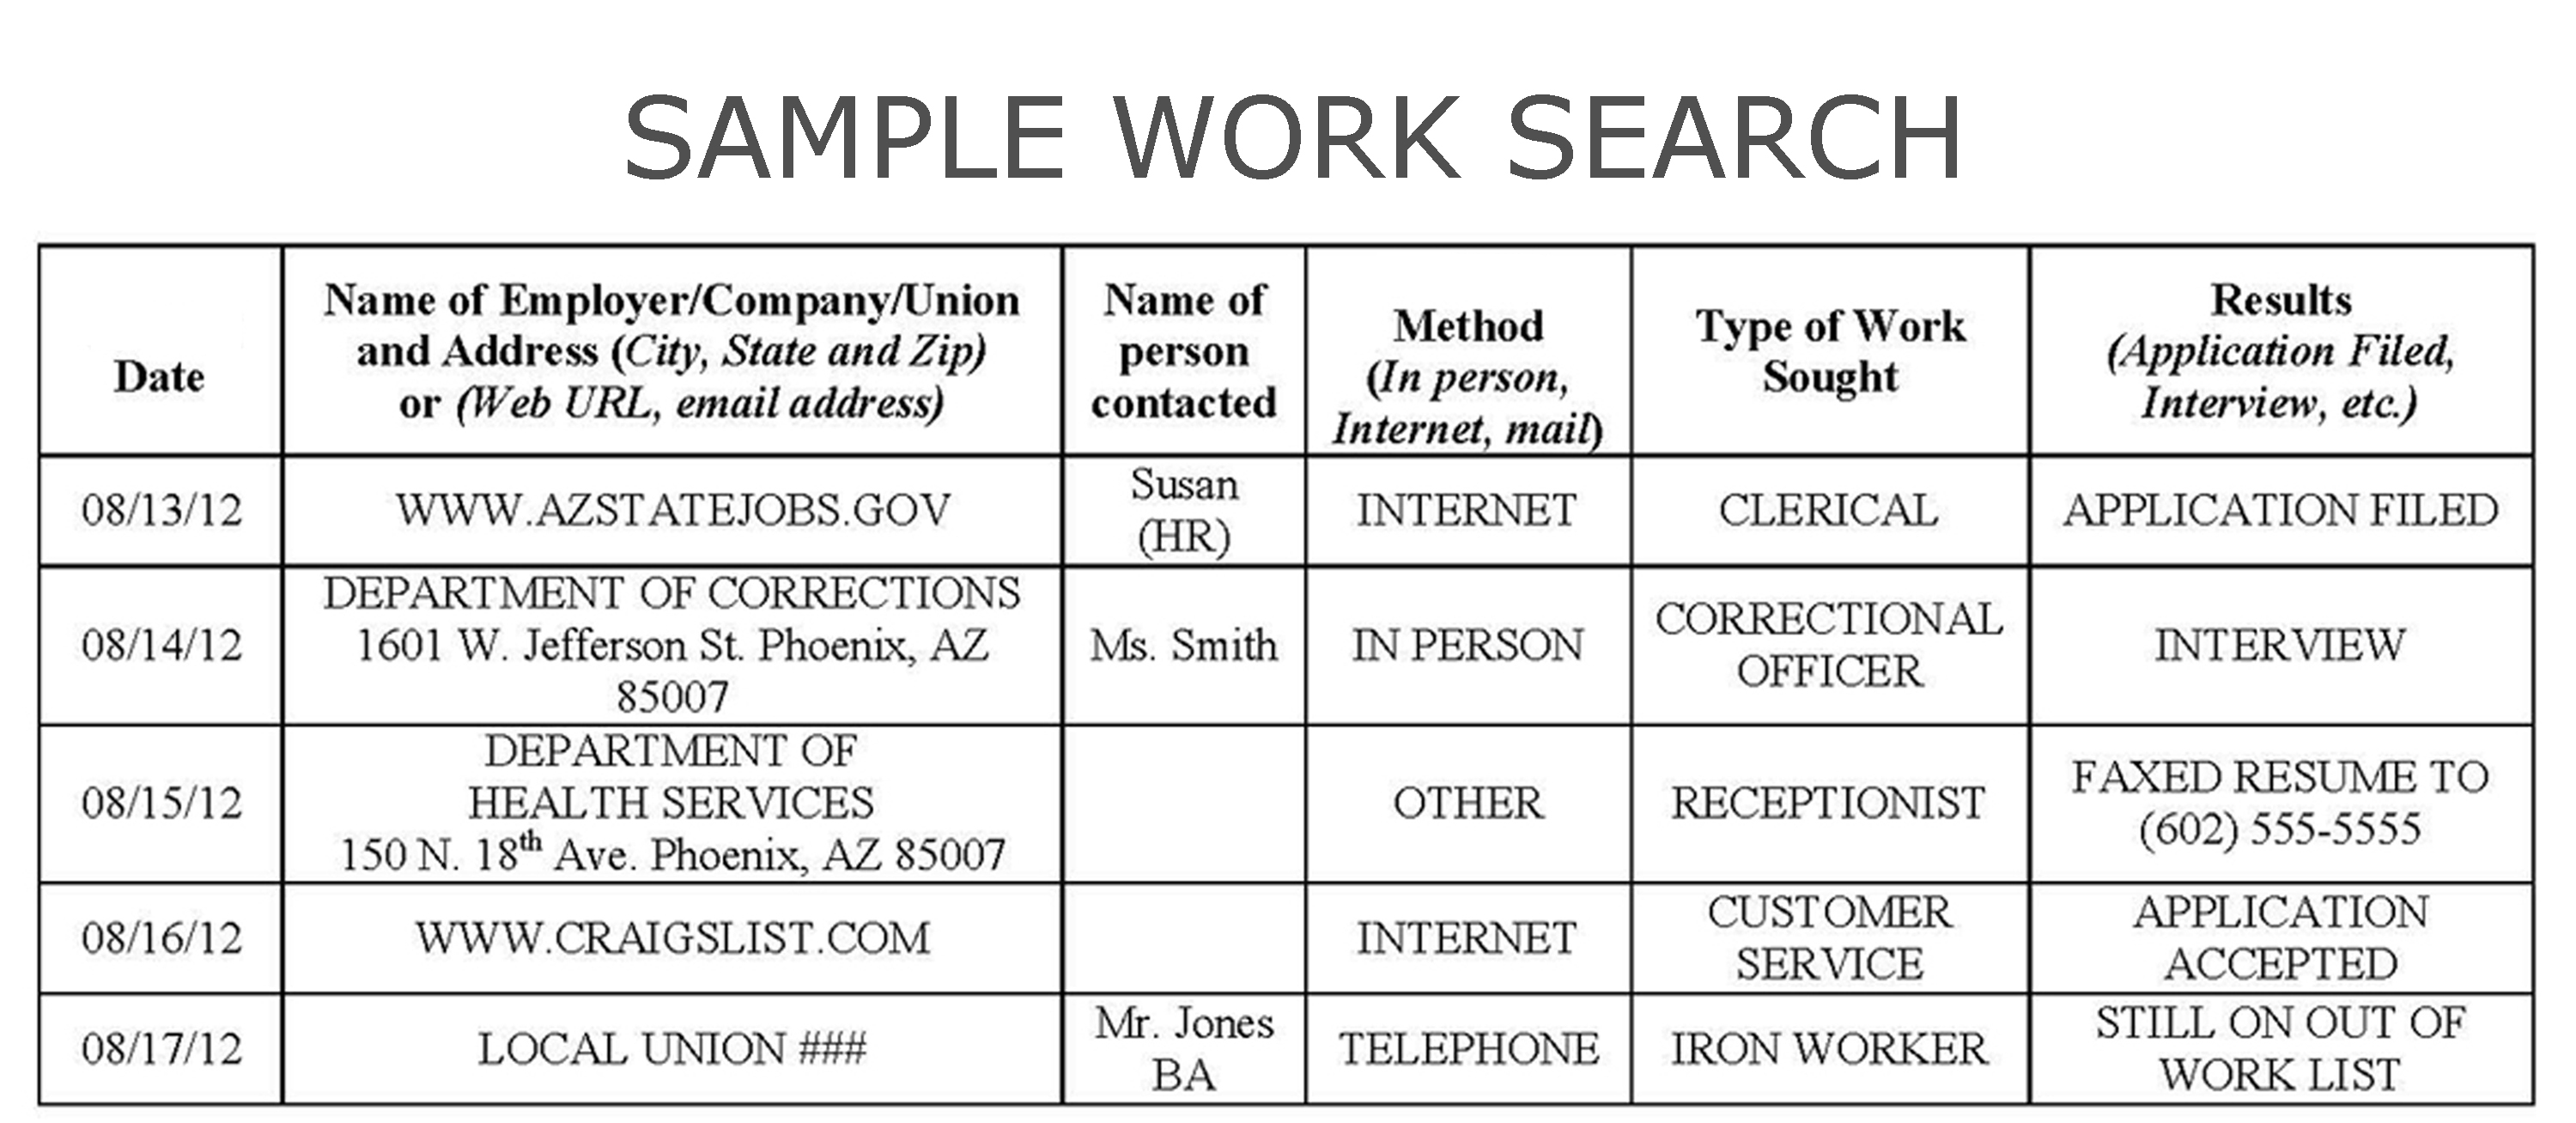 Instructions for Completing Weekly Claim for UI Benefits | Arizona ...